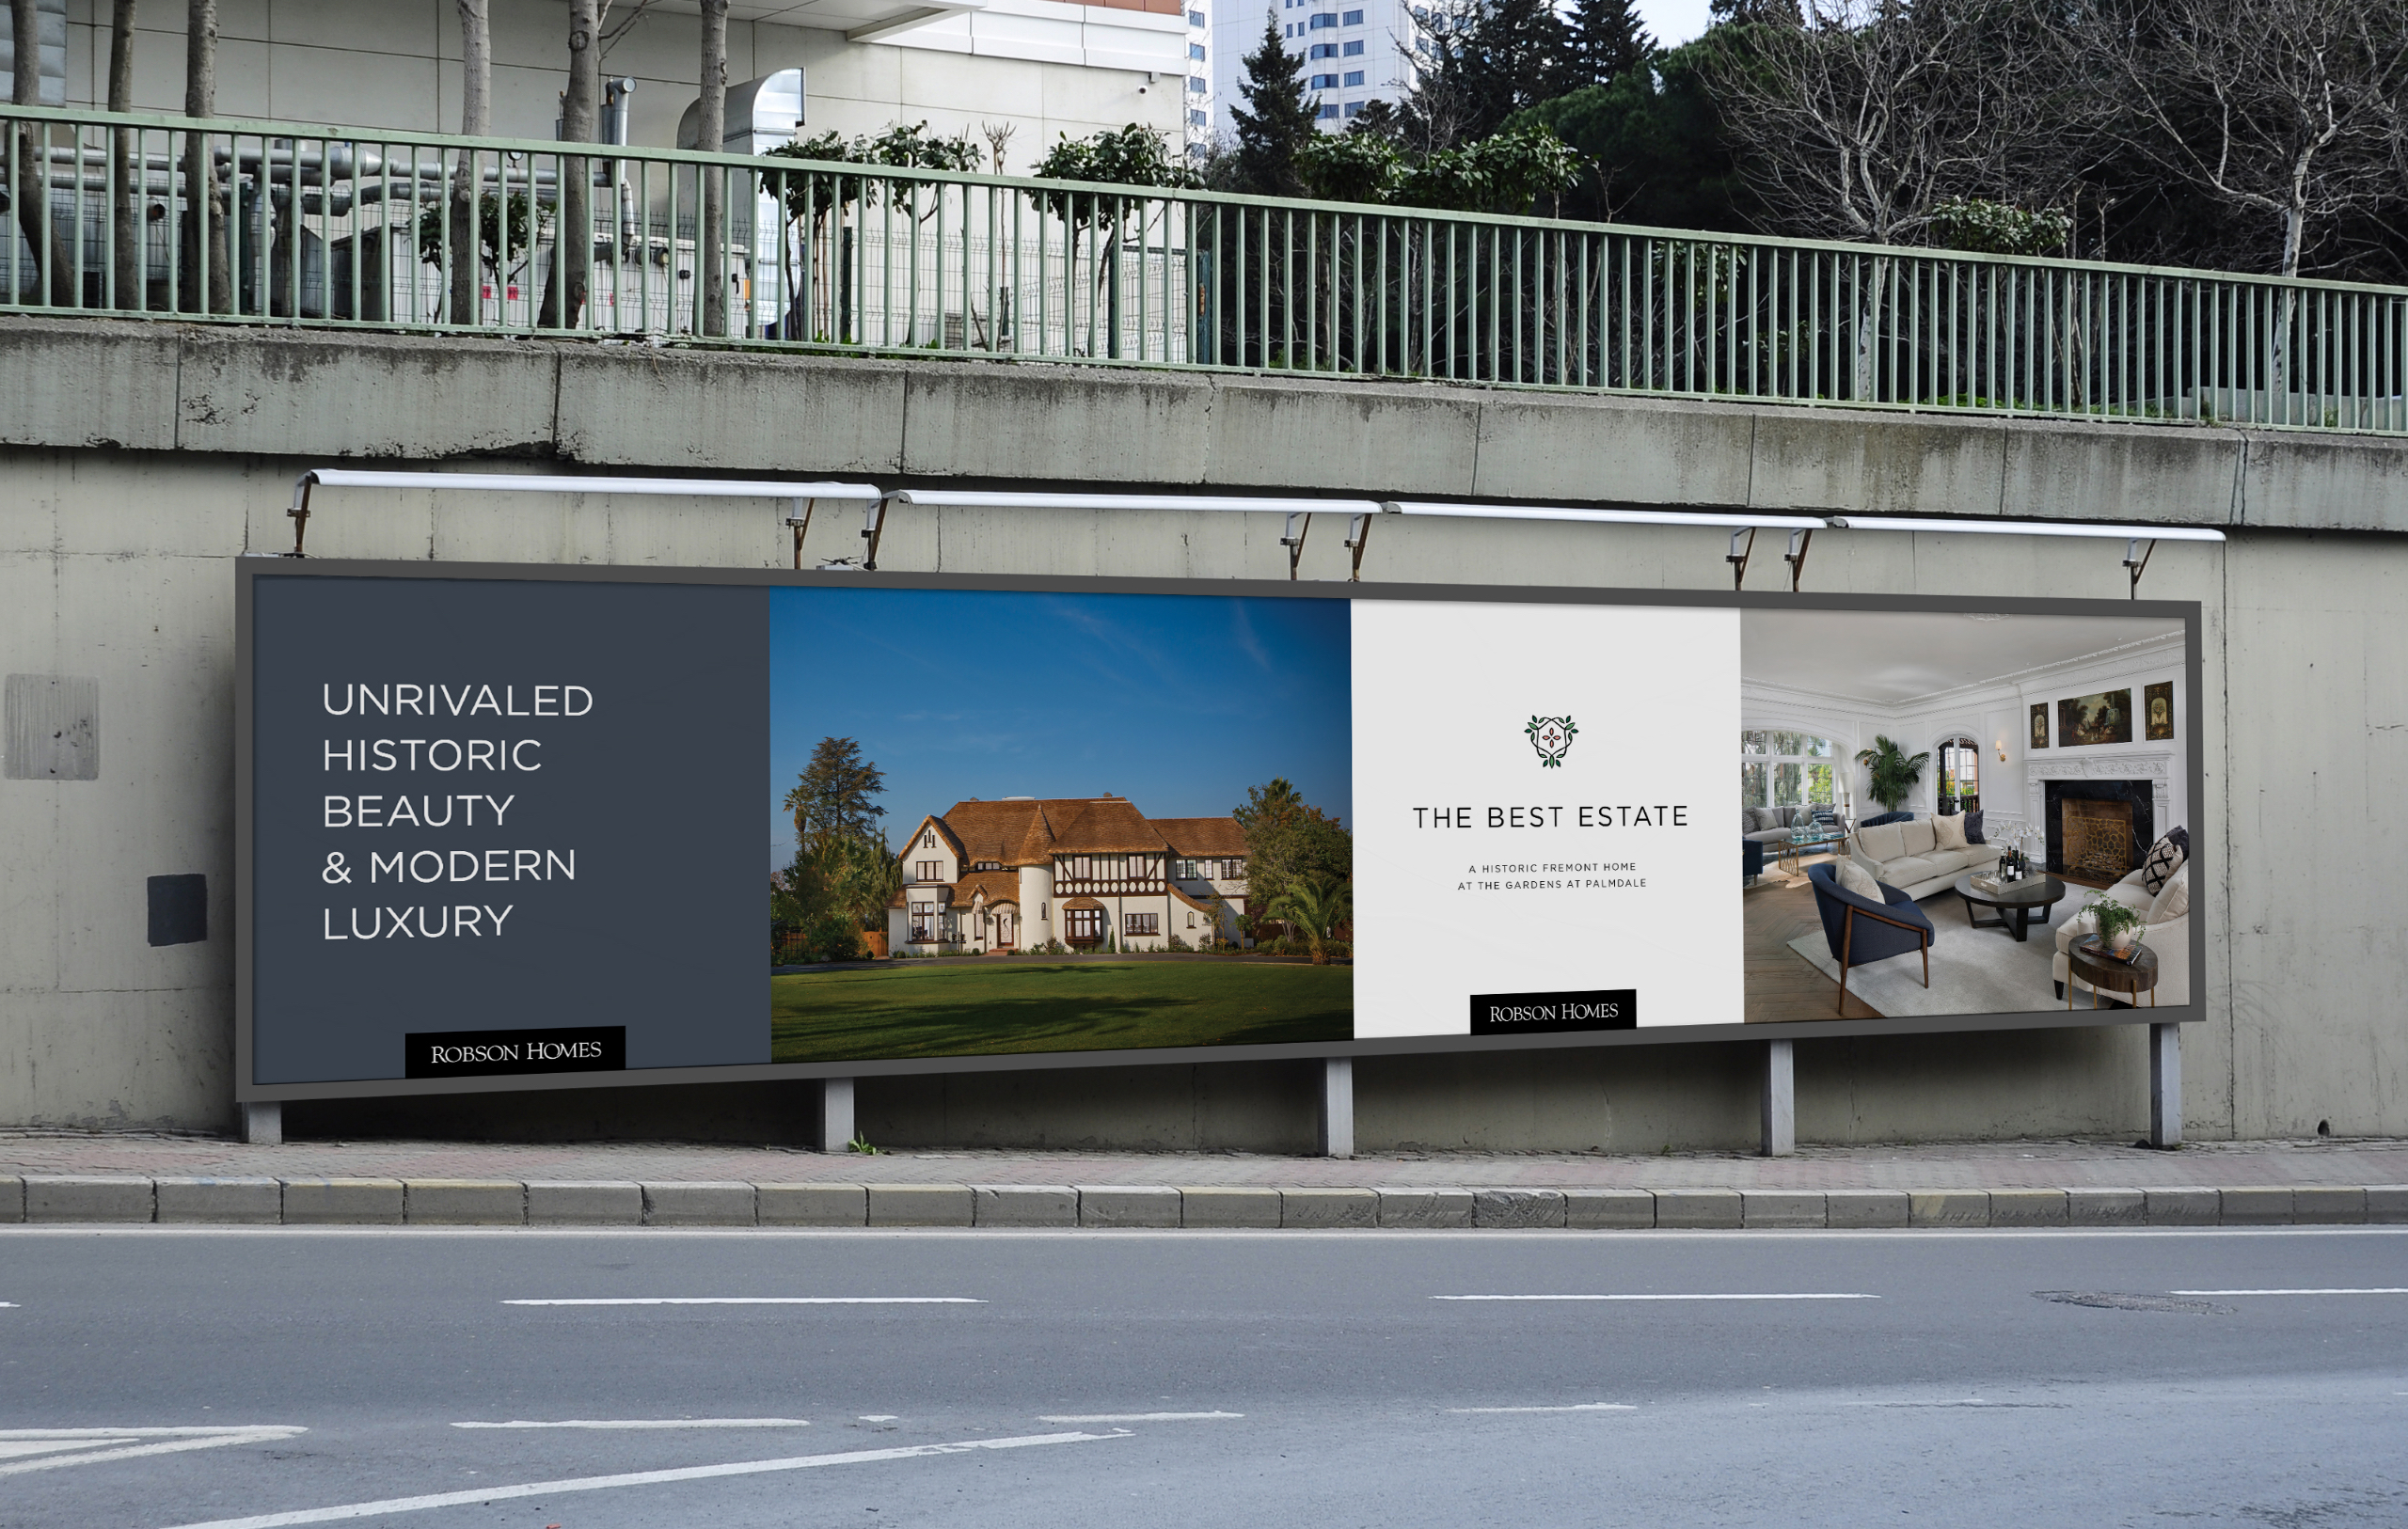 The Best Estate billboard